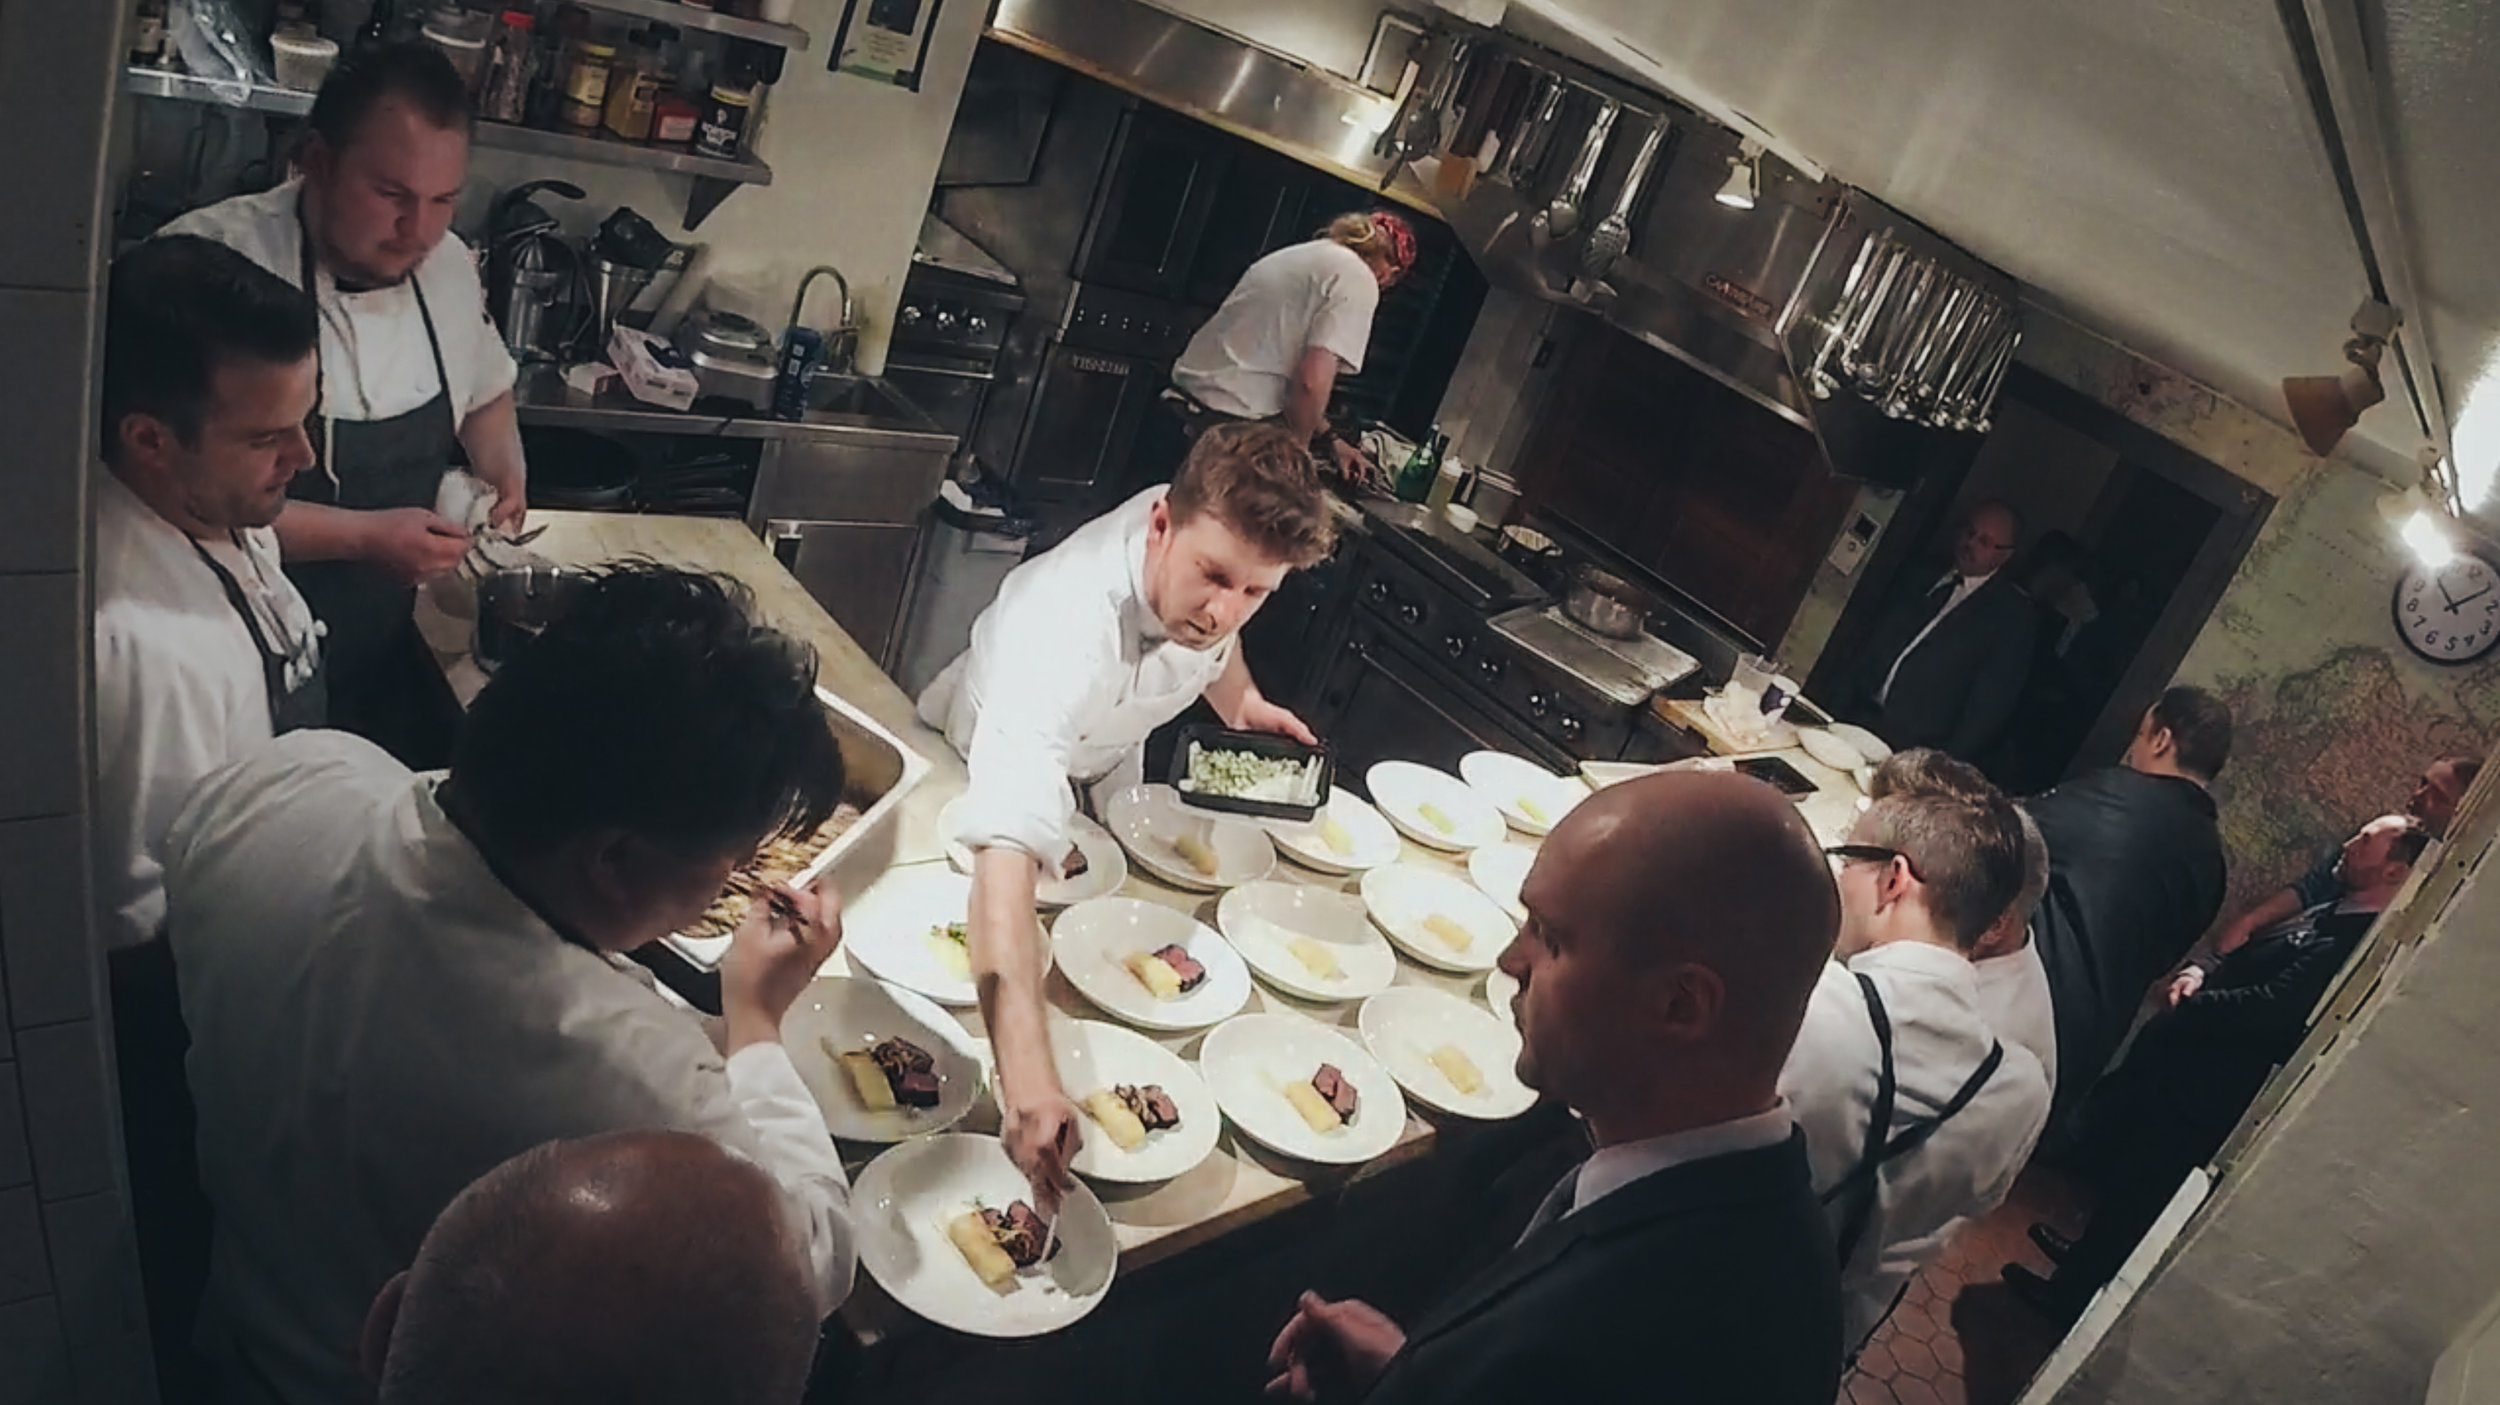 Plating at the James Beard House with 2-Michelin Star Chef Ryan McCaskey of Acadia and his team. Getting 75+ plates out at the same time is a test of efficiency.